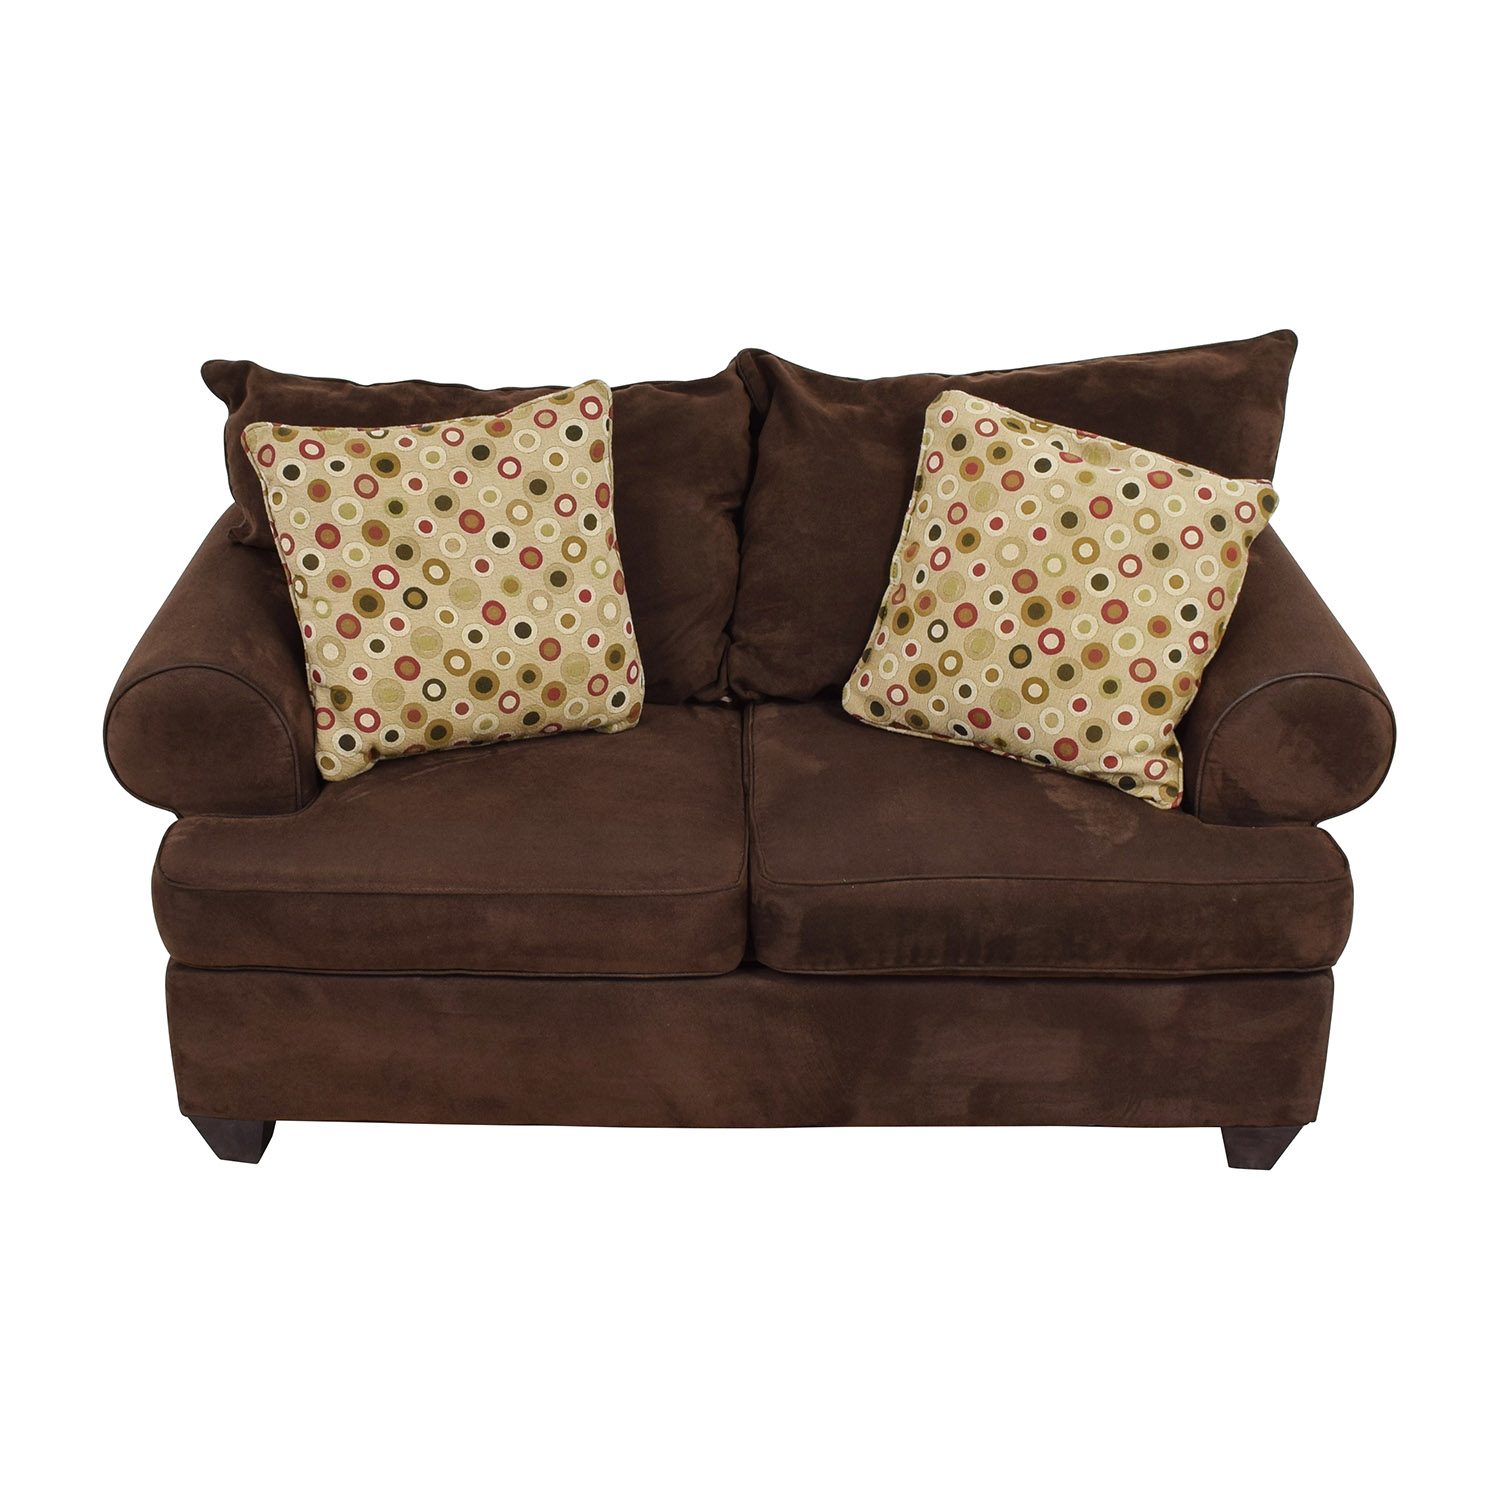 Raymour and Flanigan Raymour & Flanigan Brown Two-Cushion Loveseat Loveseats